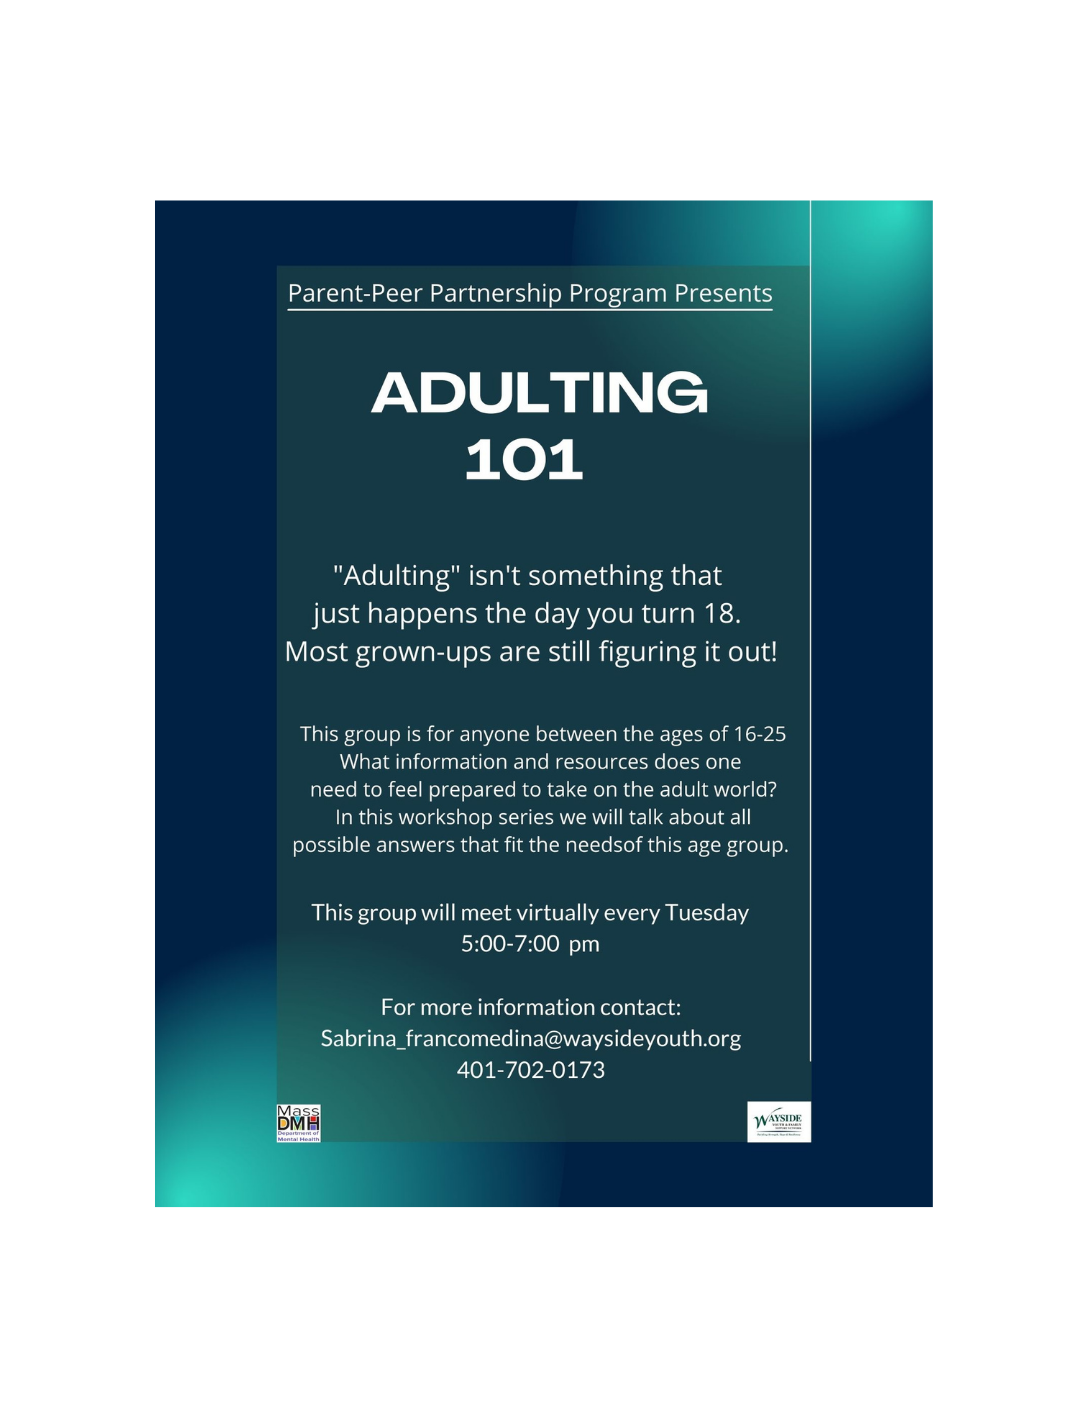 """Wayside Adulting 101 Group Flyer (Flyer reads: """"Adulting isn't something that just happens the day you turn 18. Most grown-ups are still figuring it out!"""" Meeting info written below.)"""